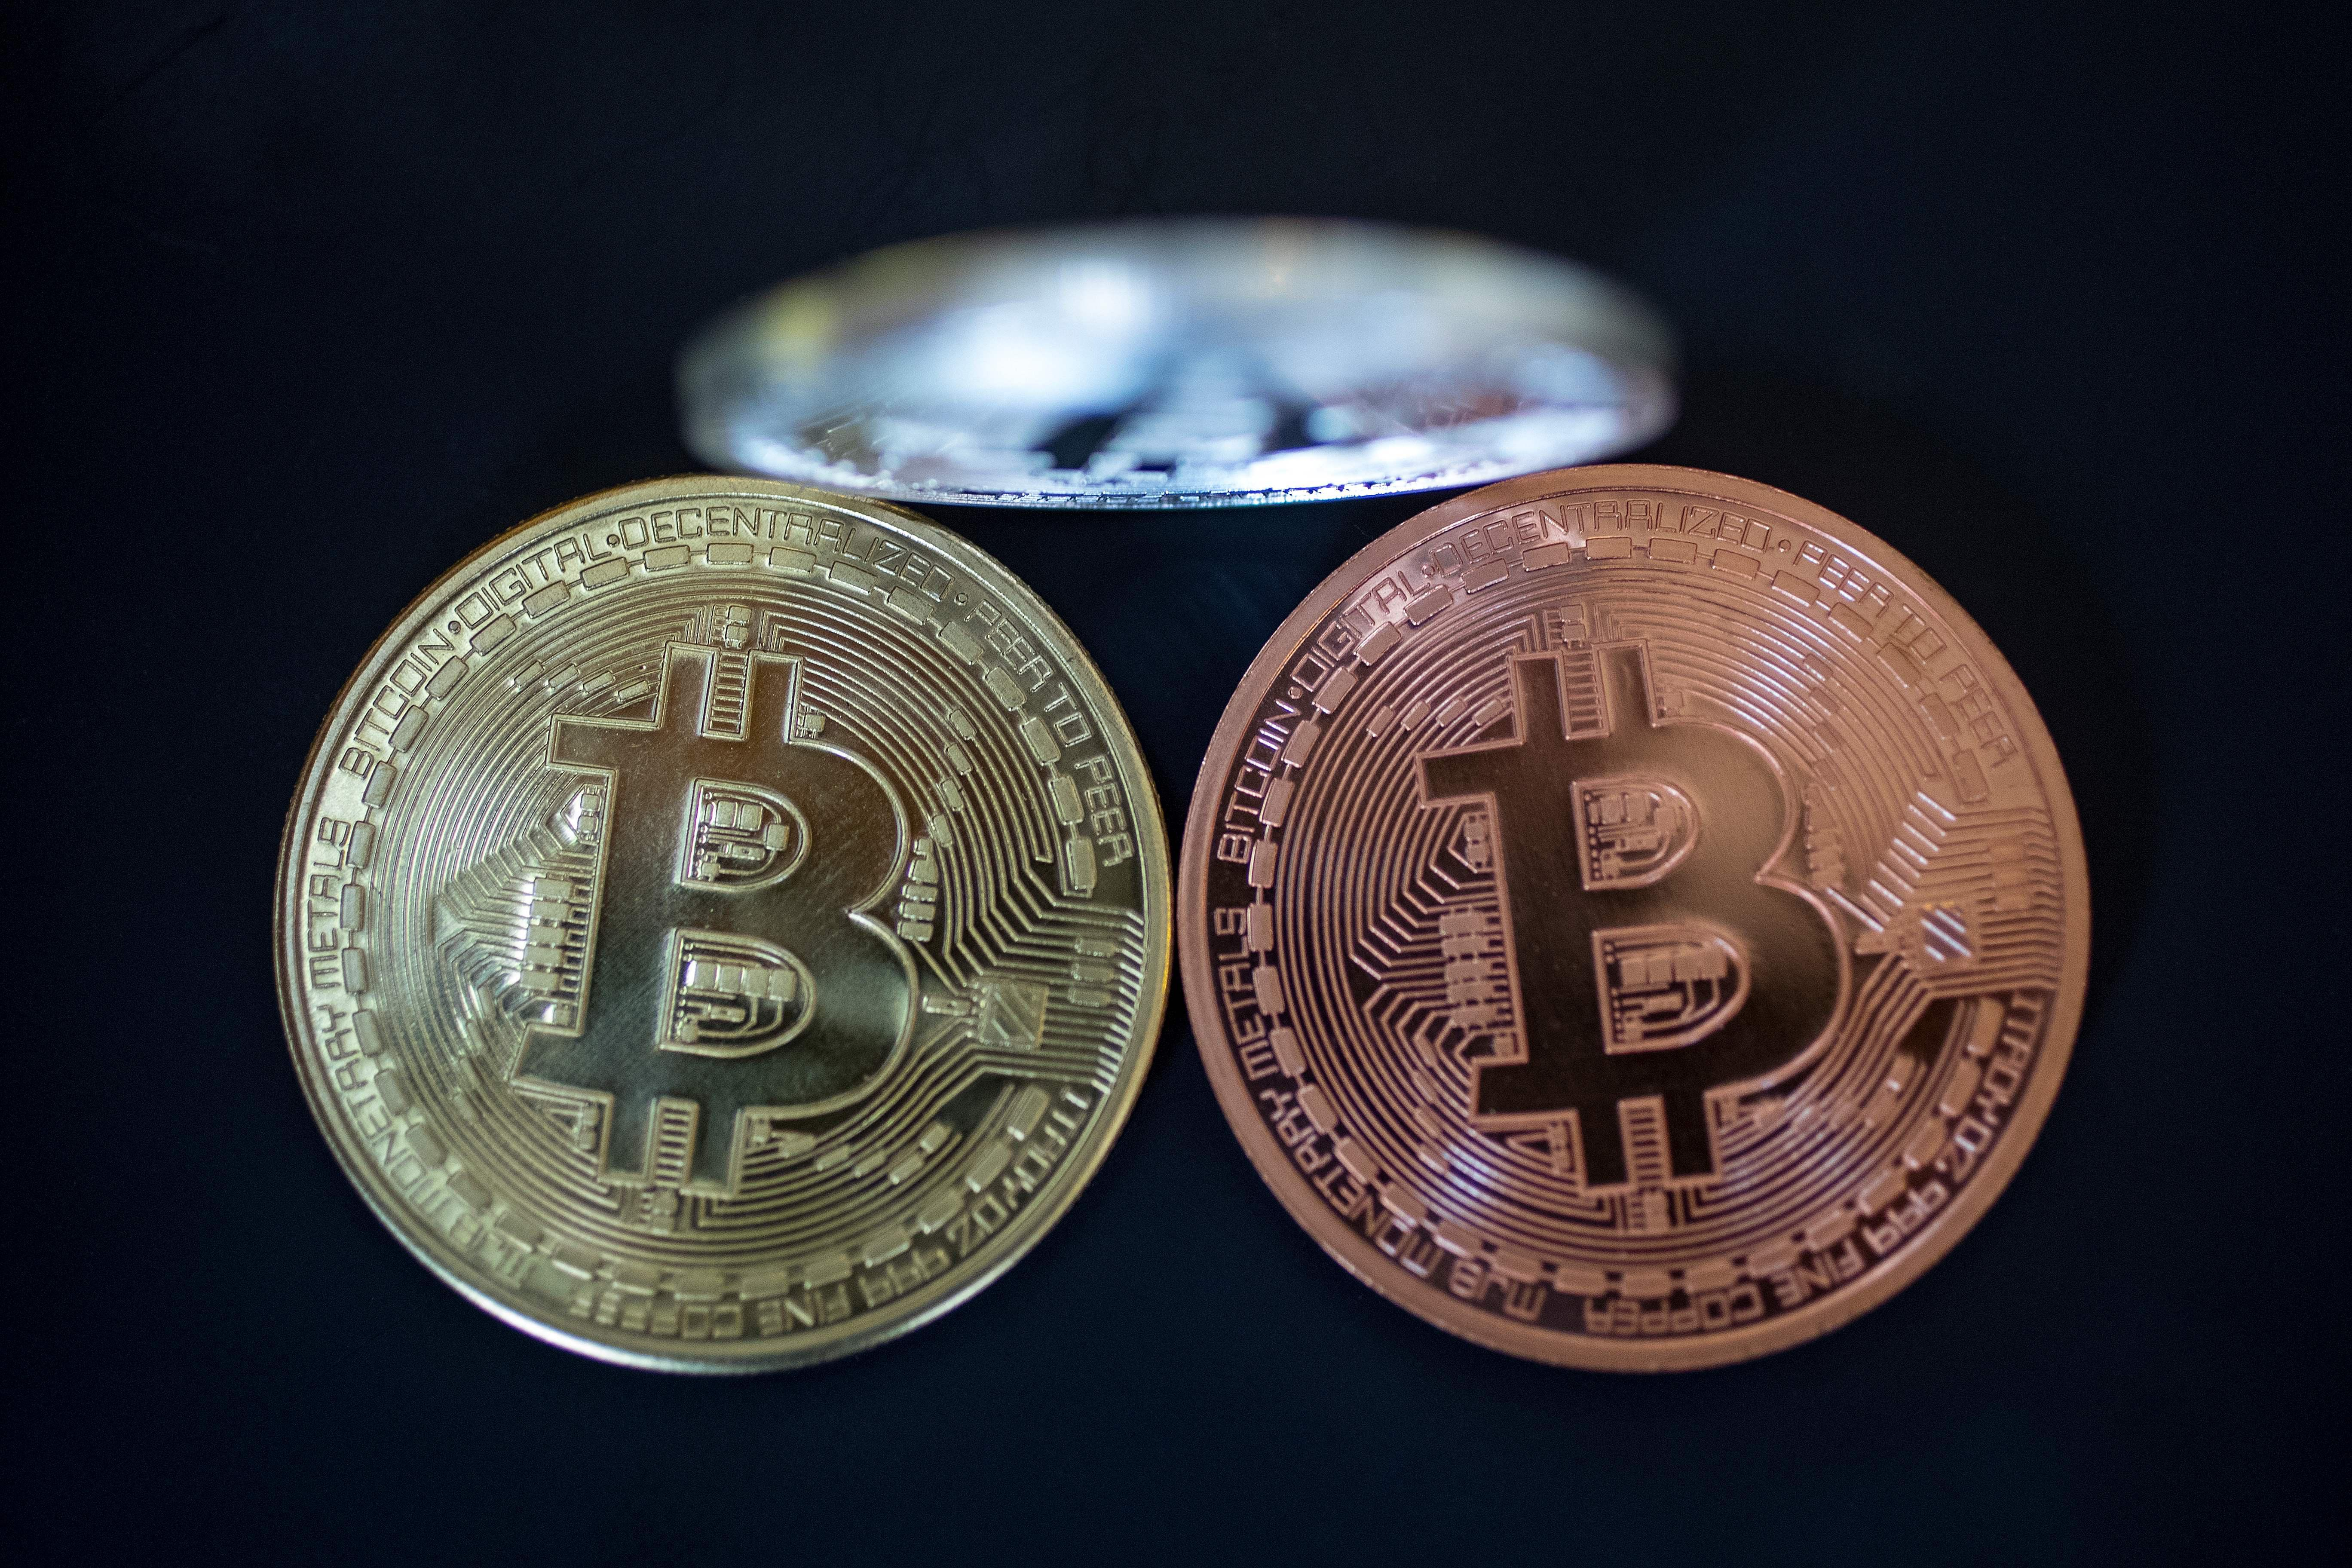 The indicted Russians allegedly mined bitcoin to pay for the equipment necessary for the hacks.